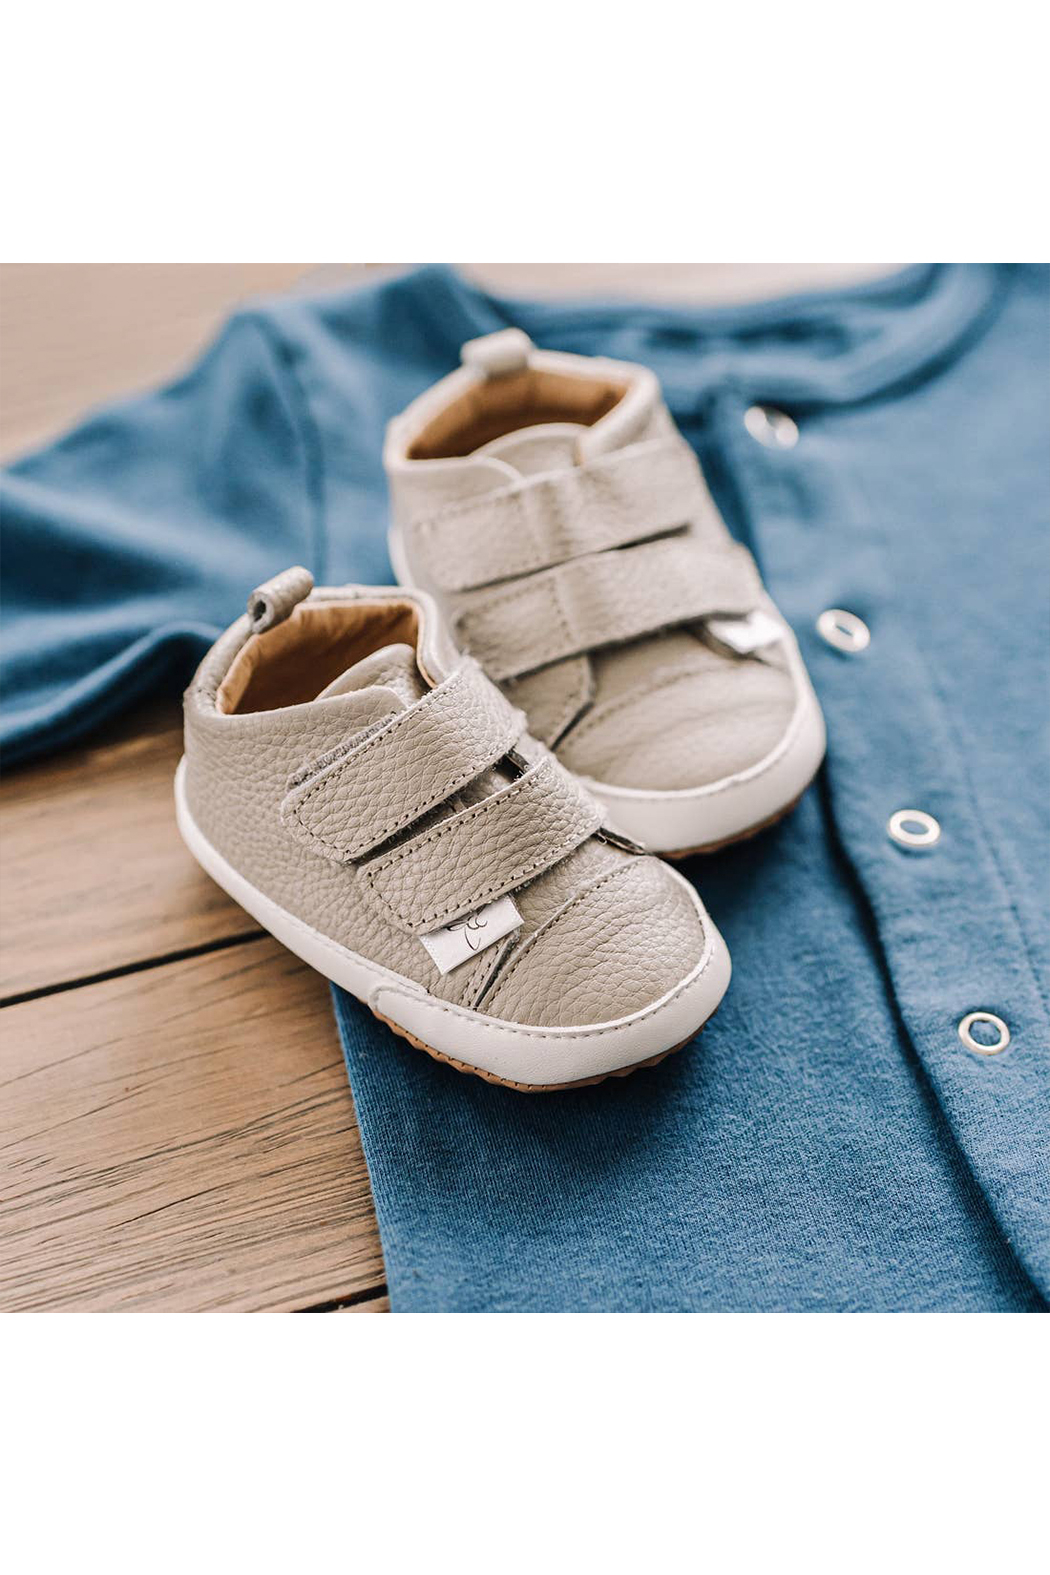 Little Love Bug Company Casual Grey Low Top Moccasin - Front Full Image